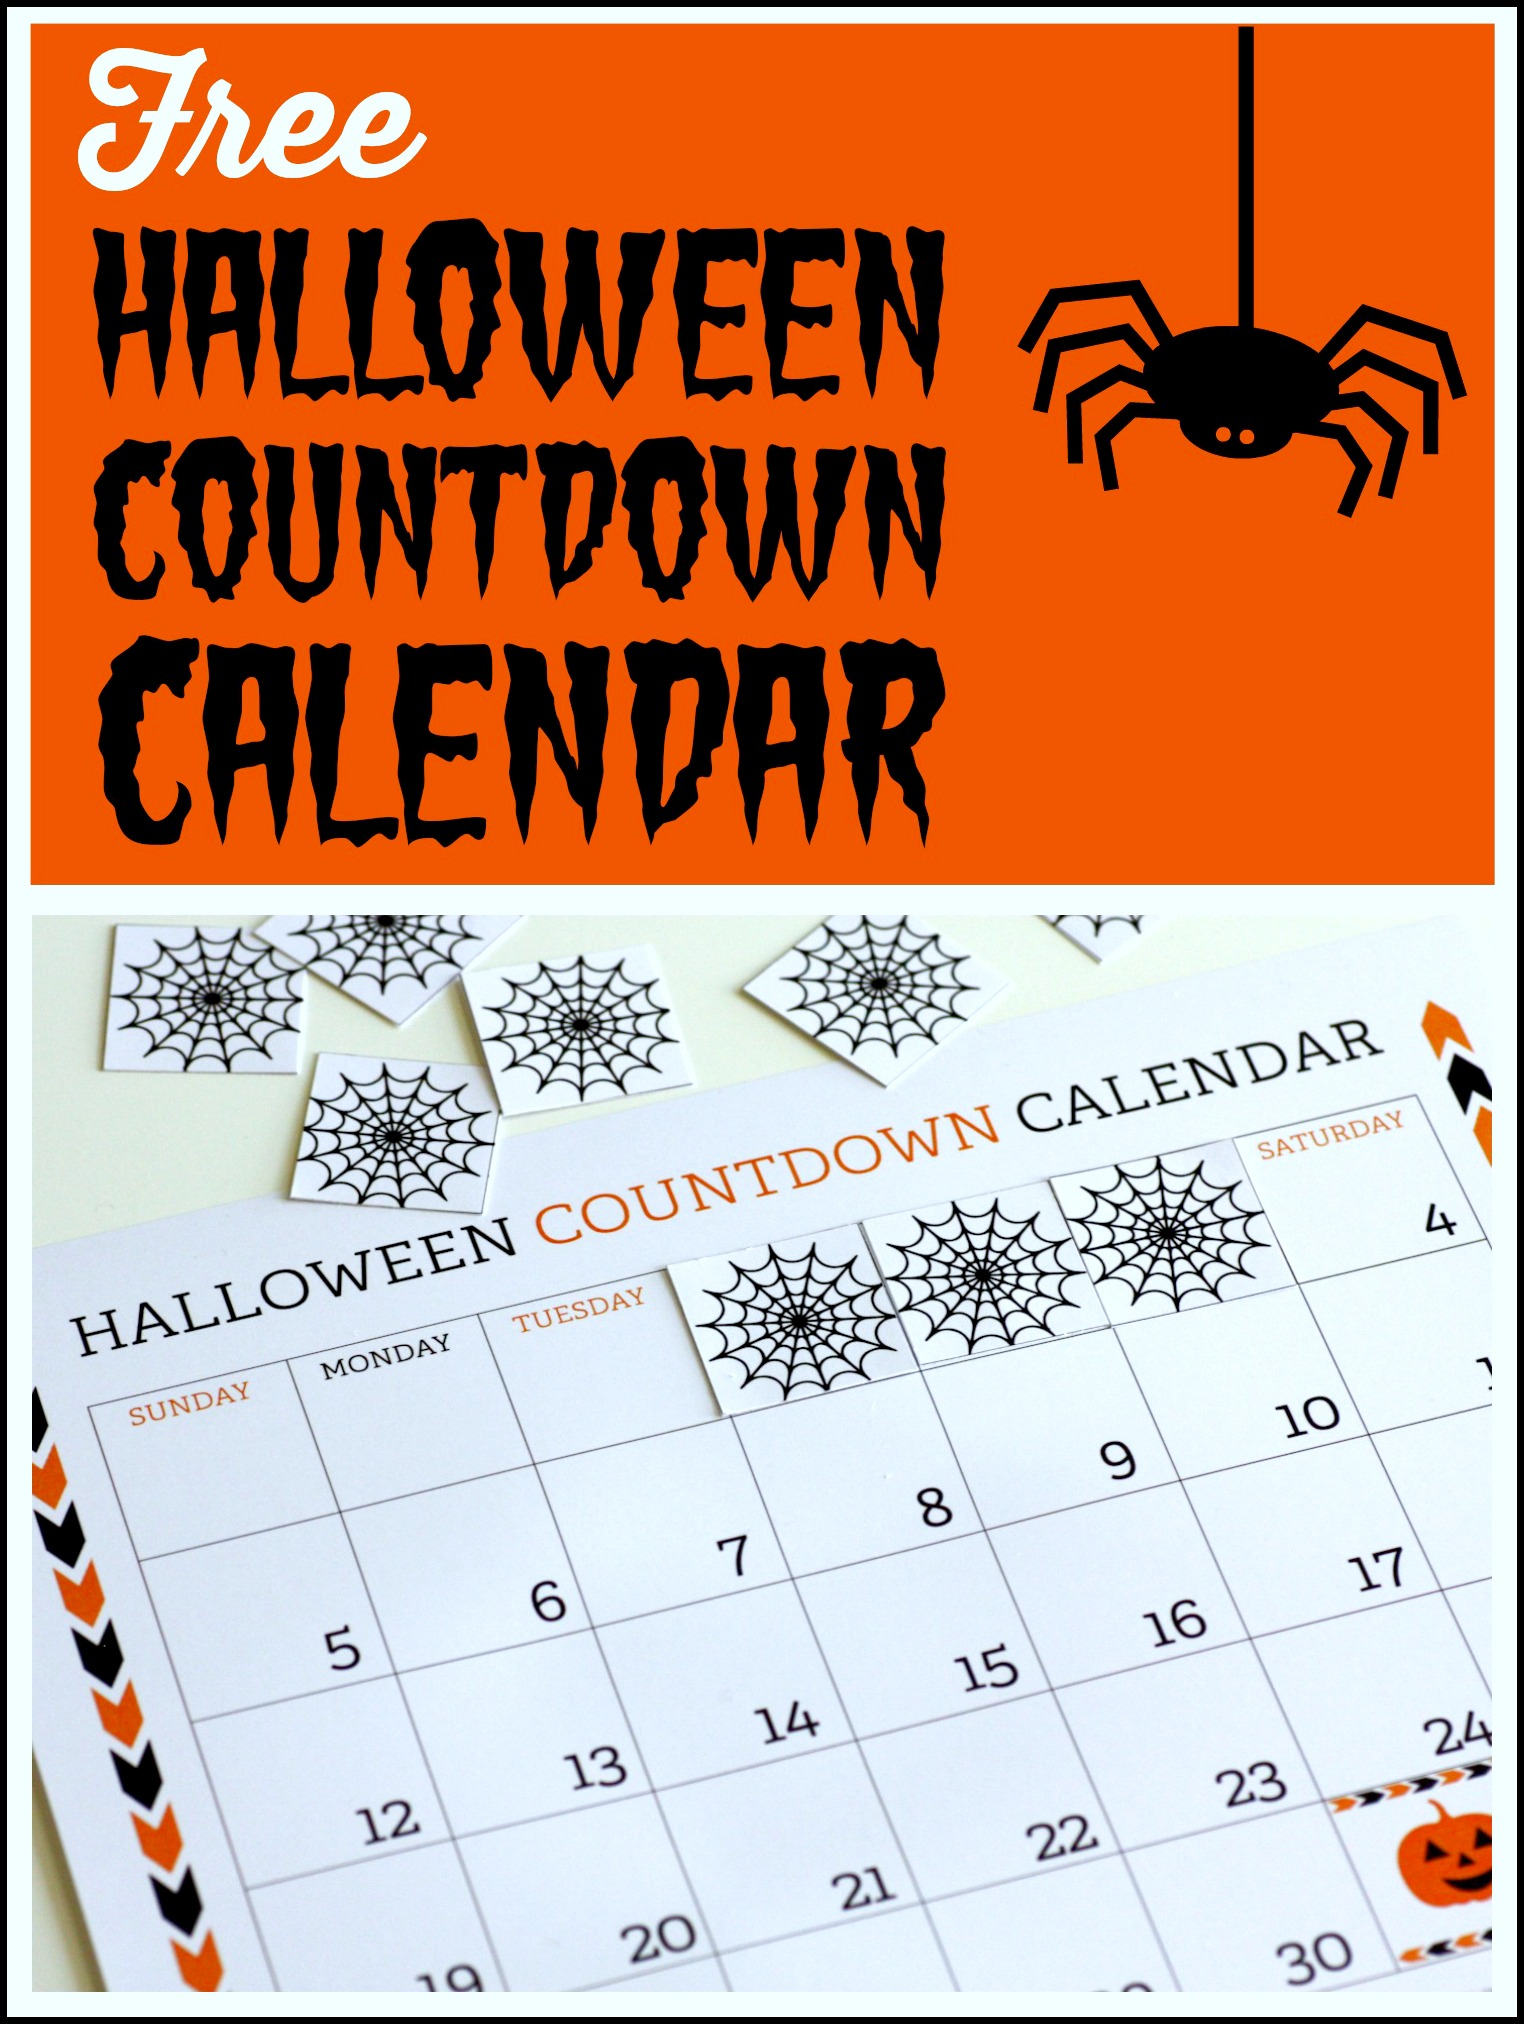 Printable Countdown Calendar That Are Sweet | Dora's Website intended for Make A Countdown Calendar Printable